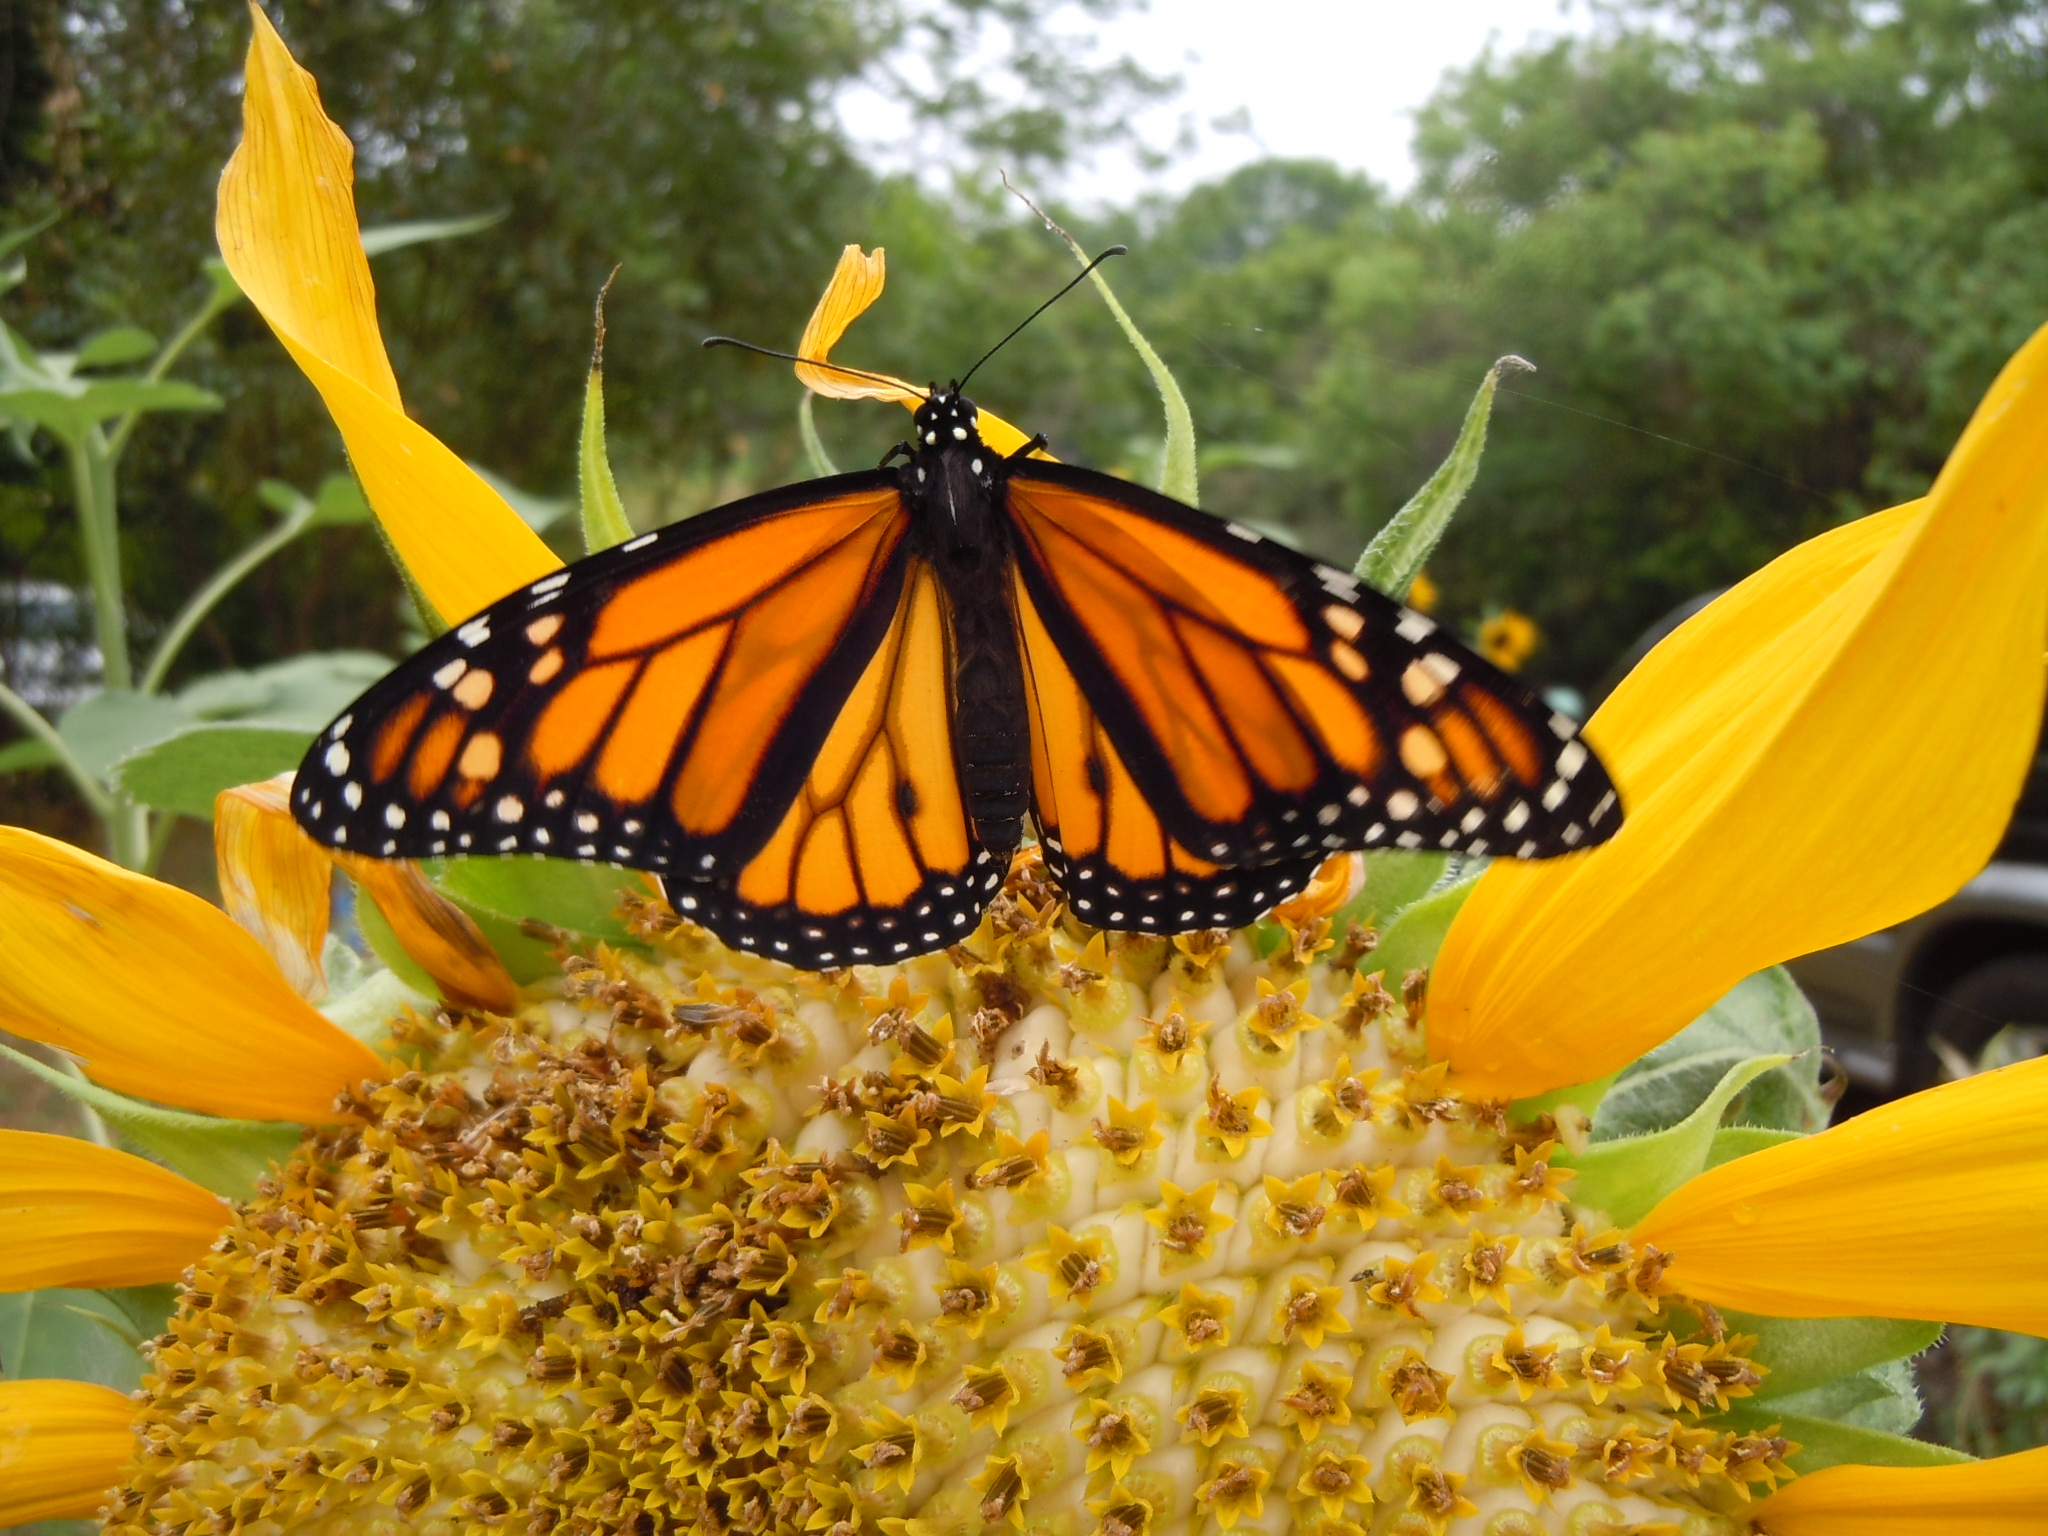 Monarch butterflies are on the move in Texas